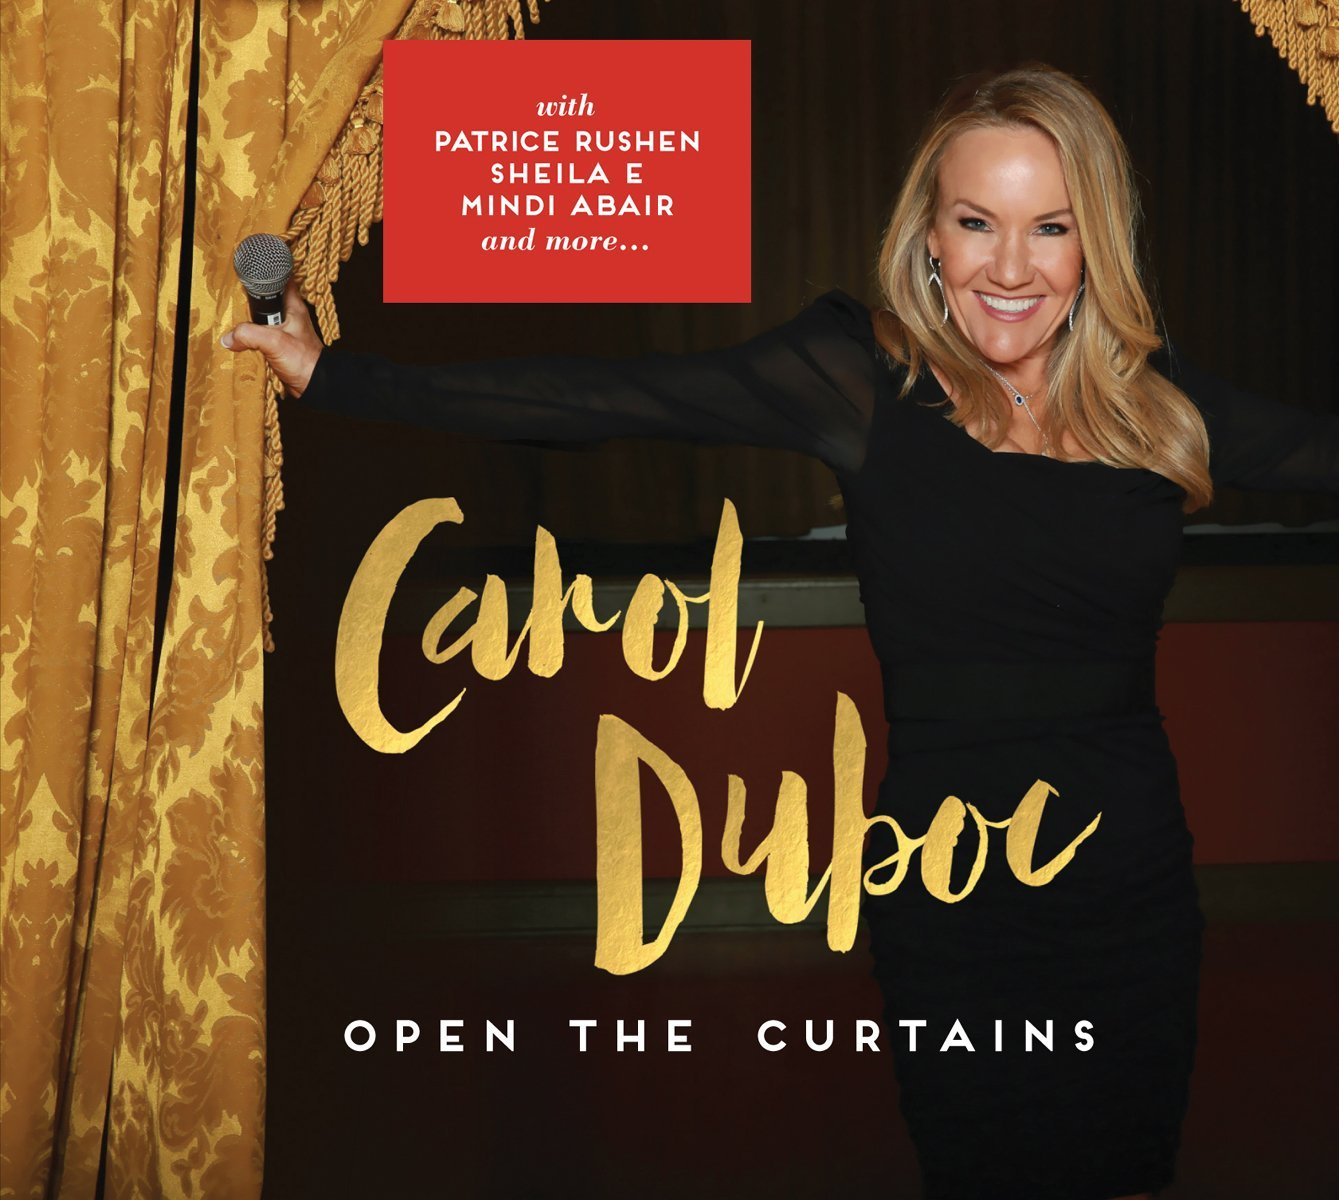 Forum on this topic: Mae West, carol-duboc/